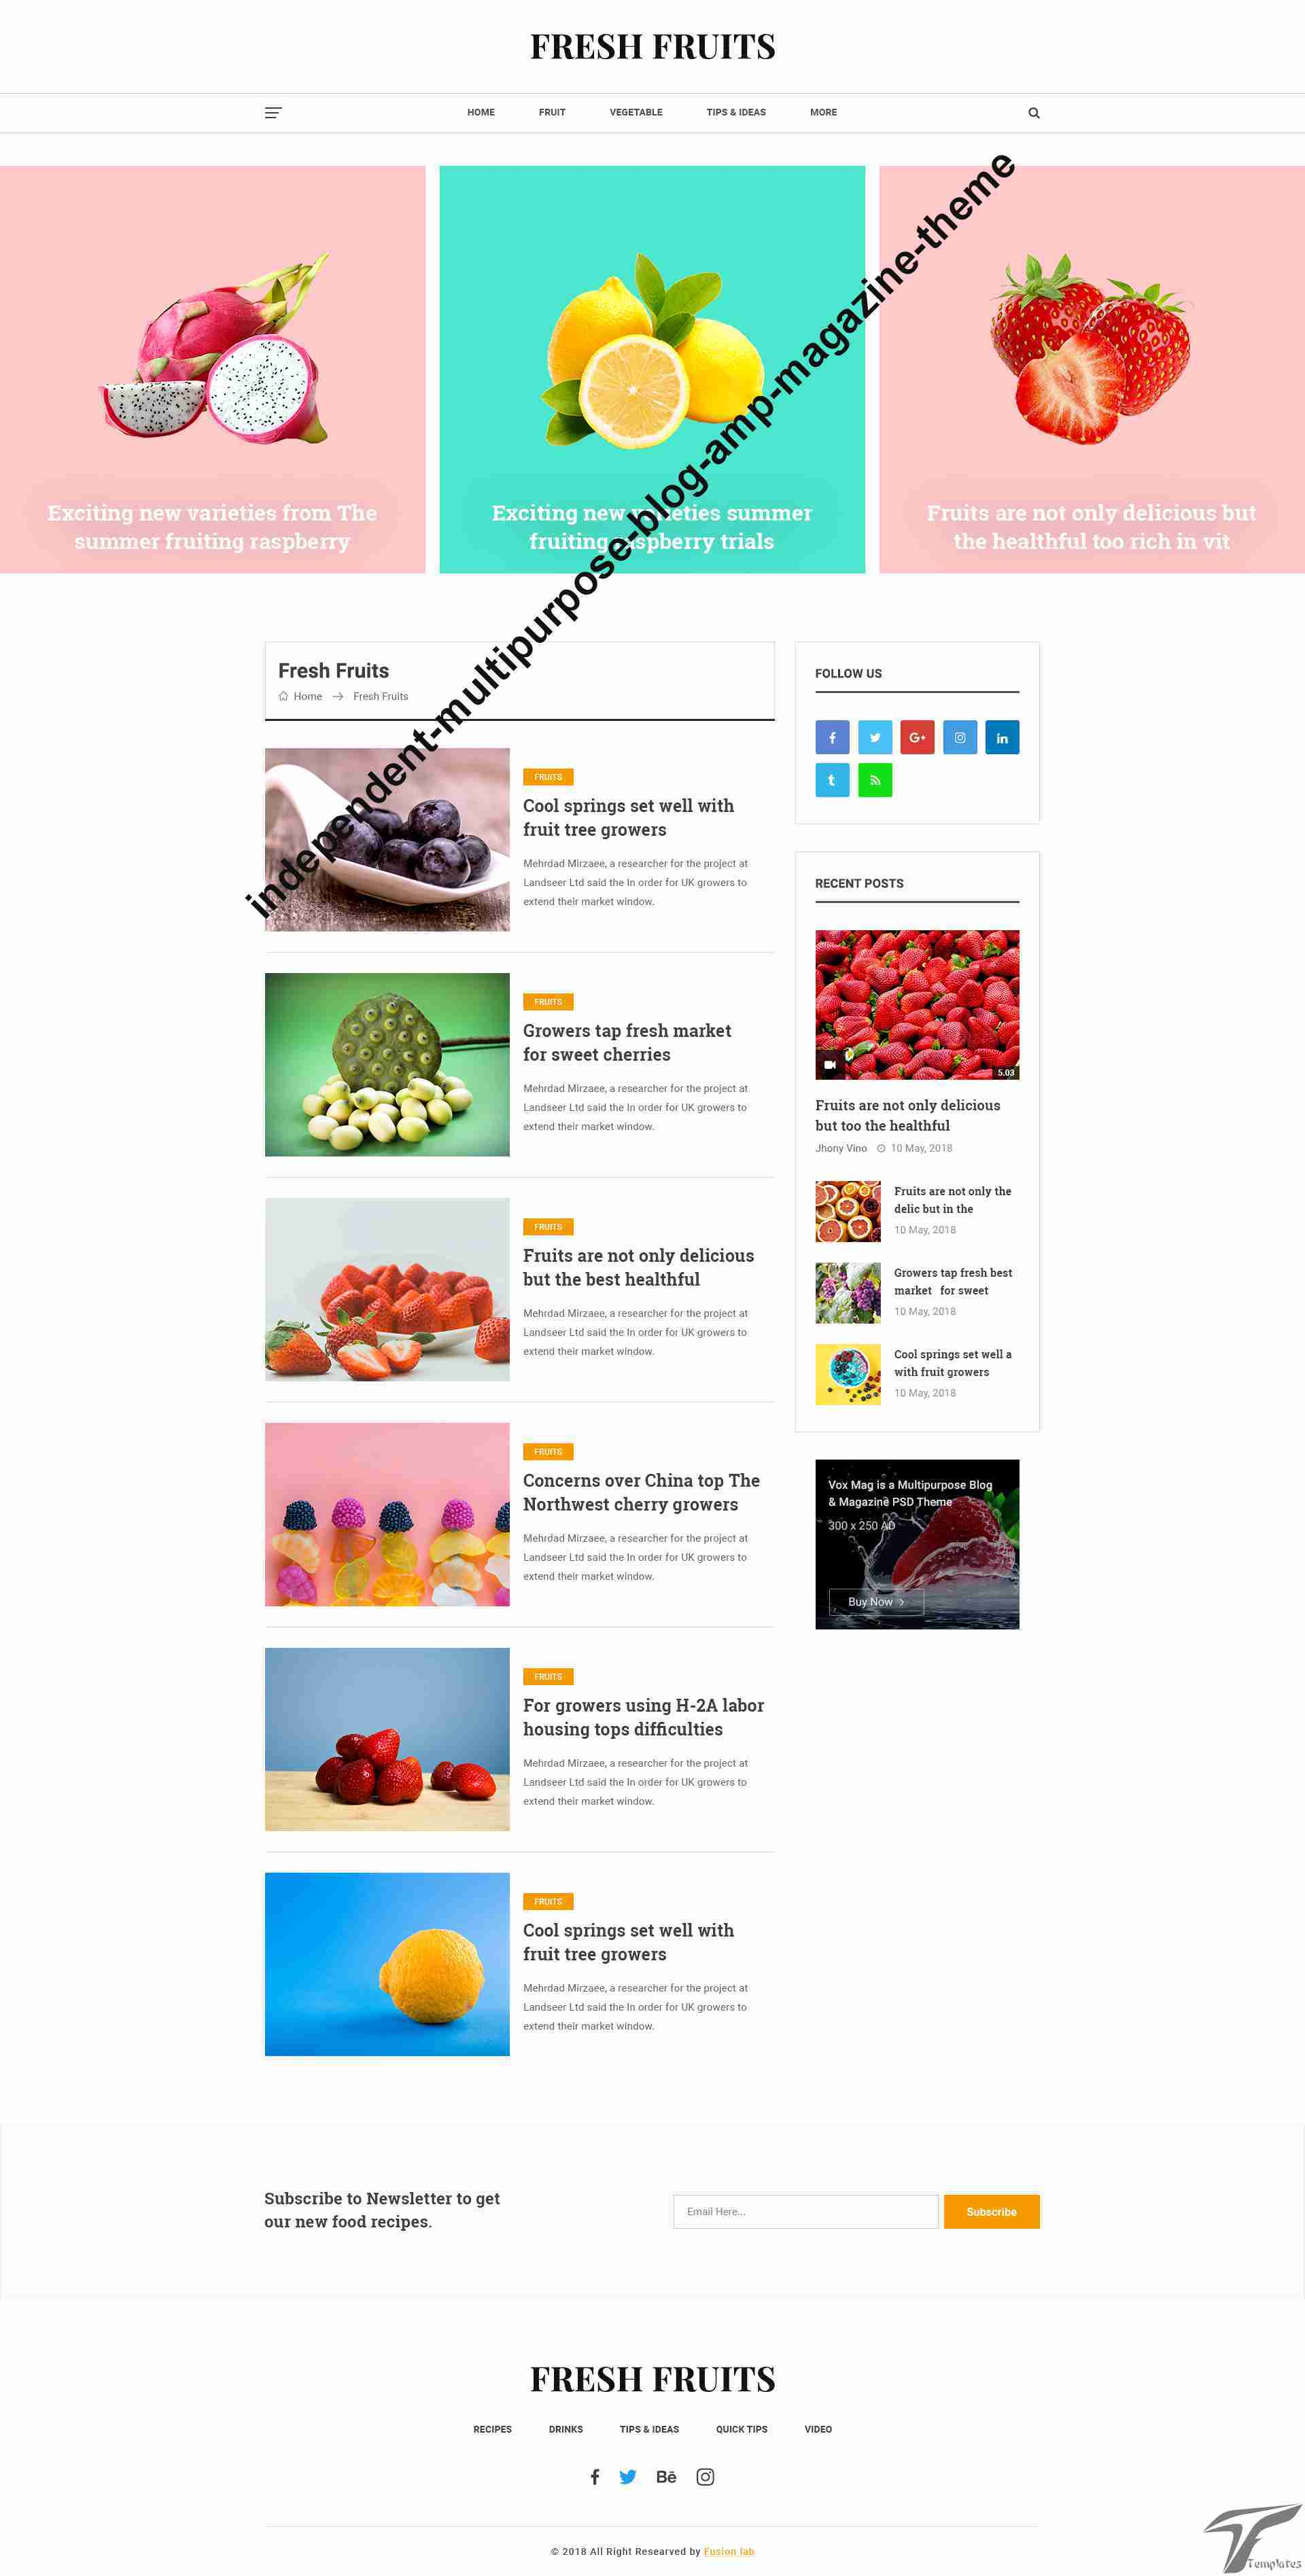 https://images.besthemes.com/images/h1_independent-multipurpose-blog-amp-magazine-theme41-_-249989416/Theme-s20s-Preview/40-Listing-s20s-Blog.jpg